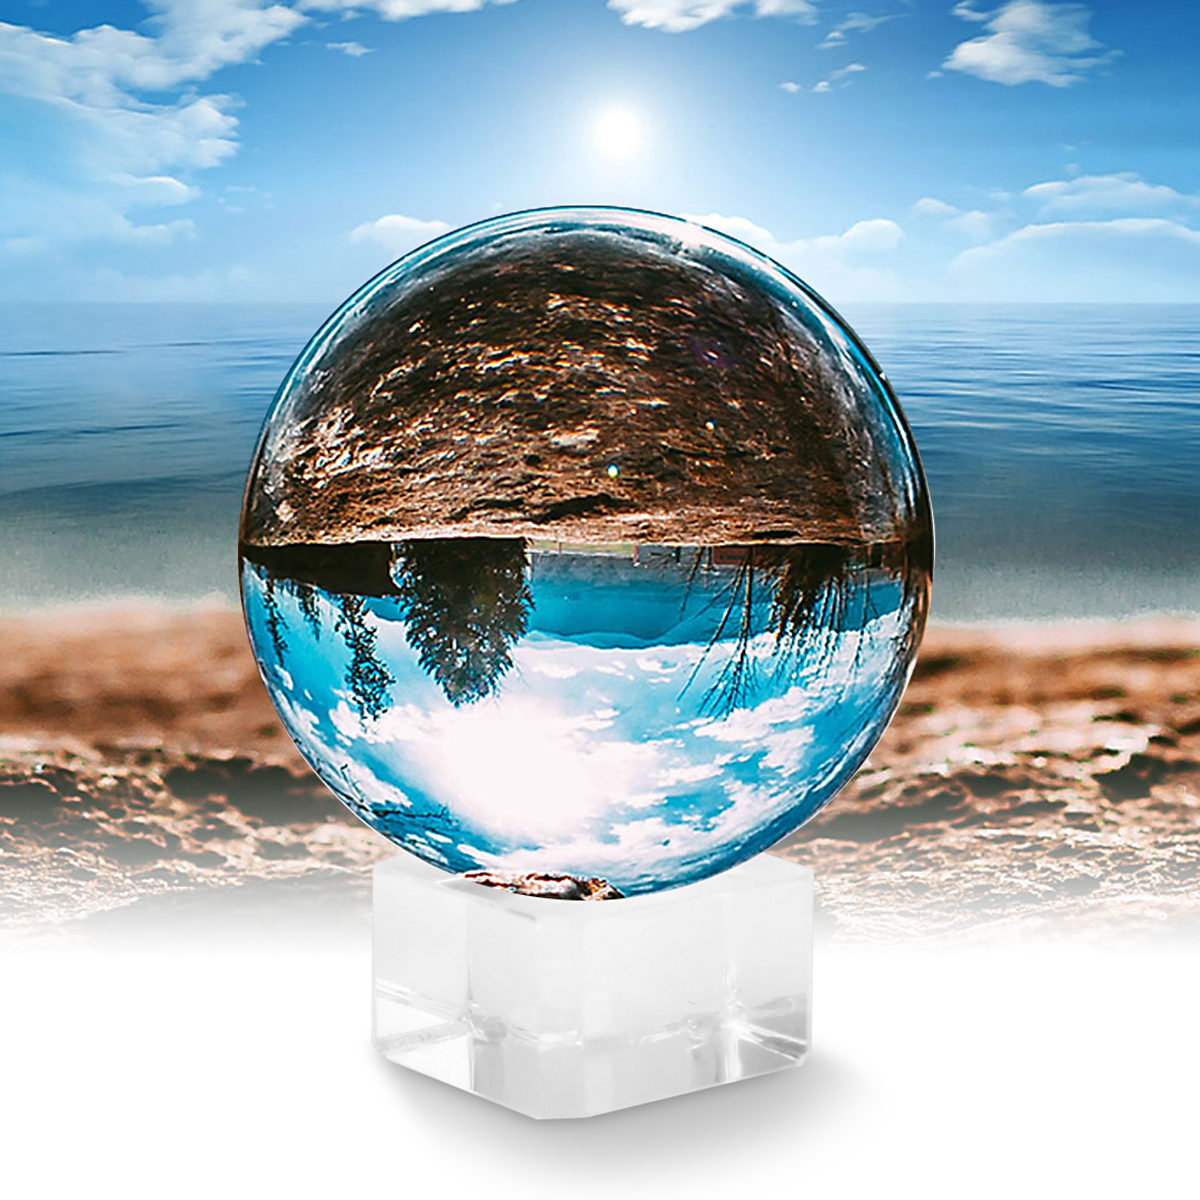 Photography Prop Crystal Ball Clear Lens Ball Ornament FengShui Globe Divination Quartz Magic Glass Ball Home Decor Sphere Photography Prop Crystal Ball Clear Lens Ball Ornament FengShui Globe Divination Quartz Magic Glass Ball Home Decor Sphere